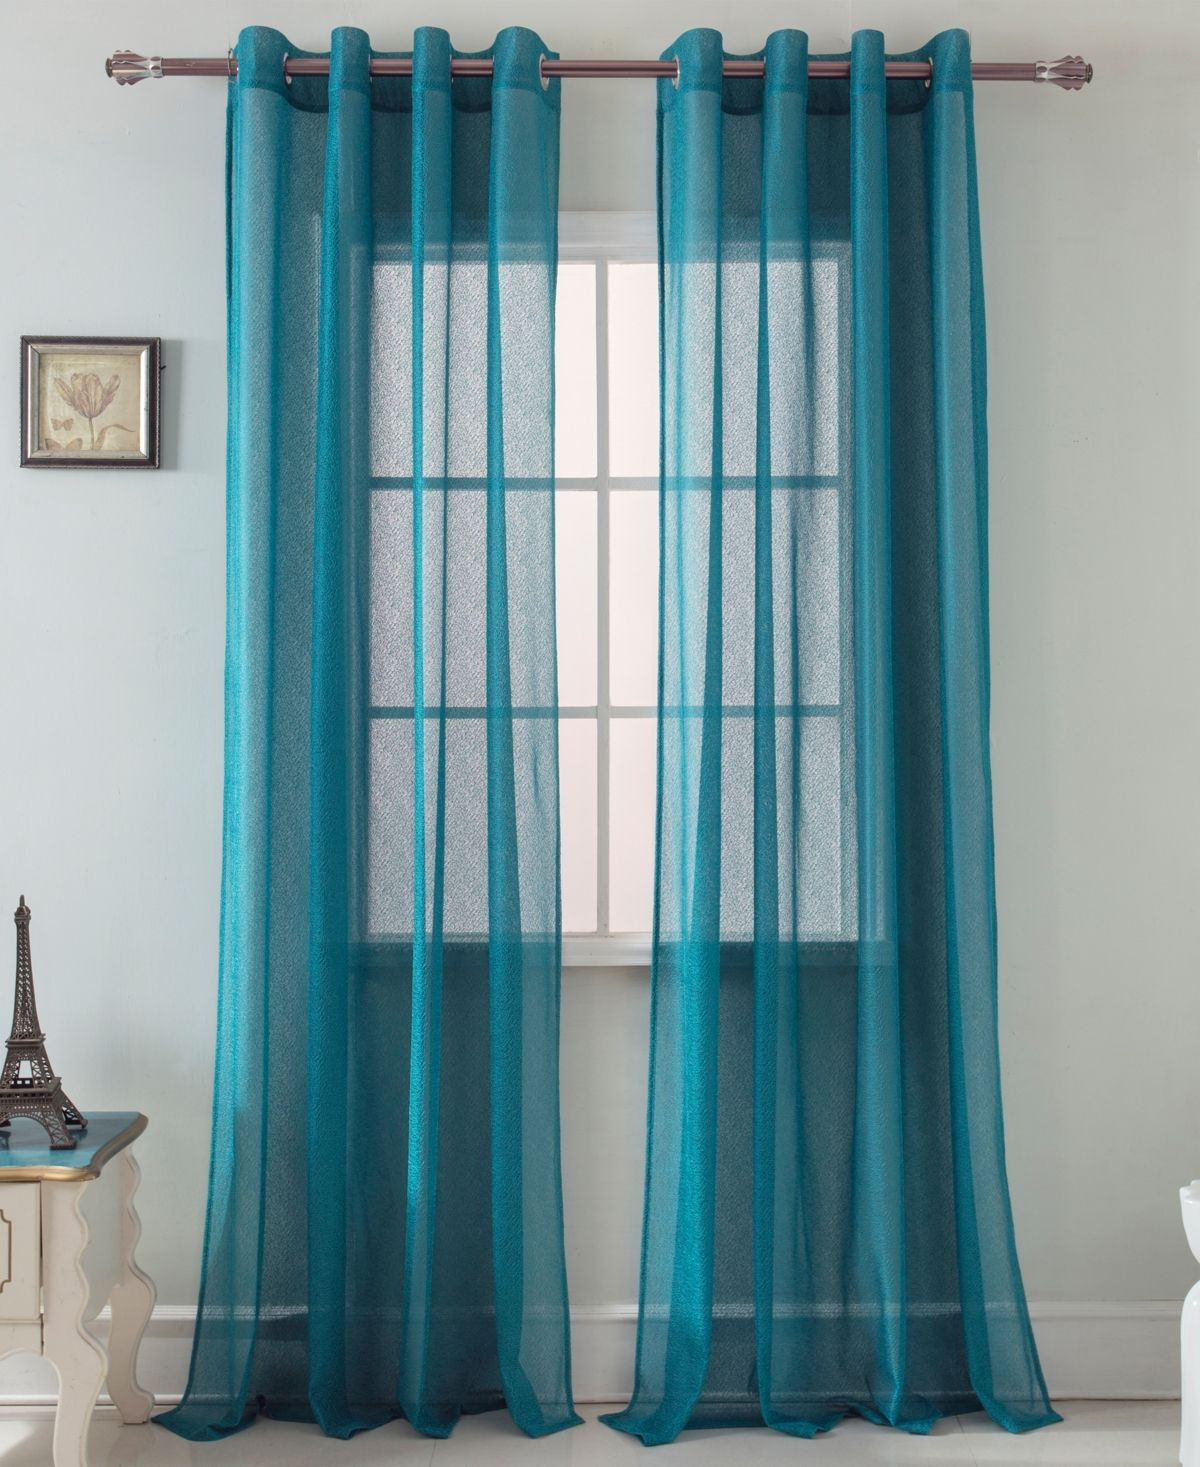 10 Most Popular Teal And Brown Living Room Curtains